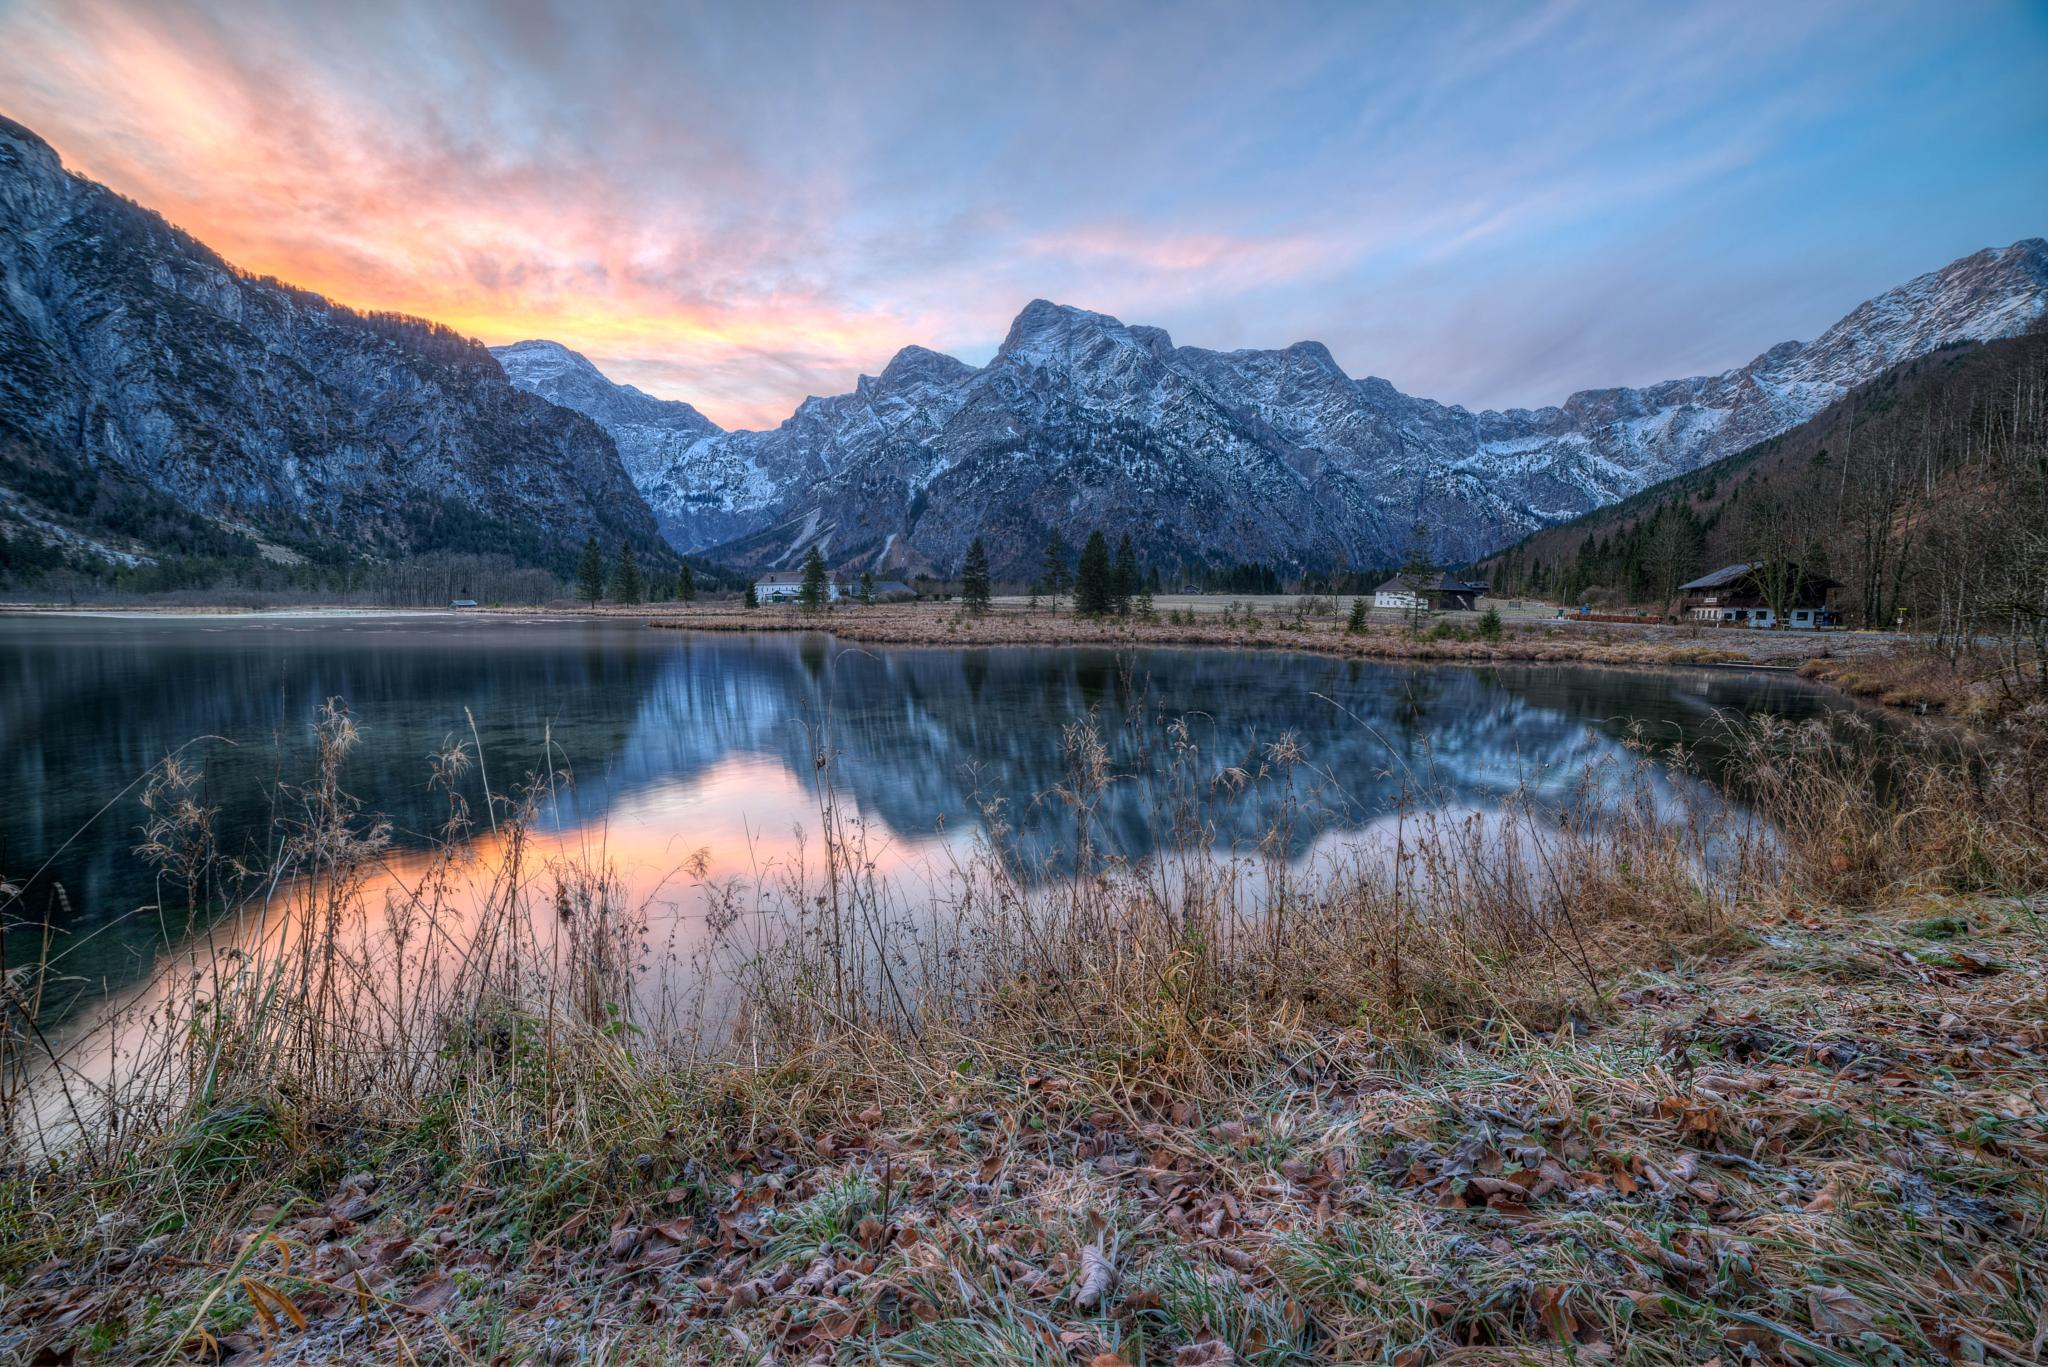 Sunset @ Almsee, Austria by Pixmil Photography